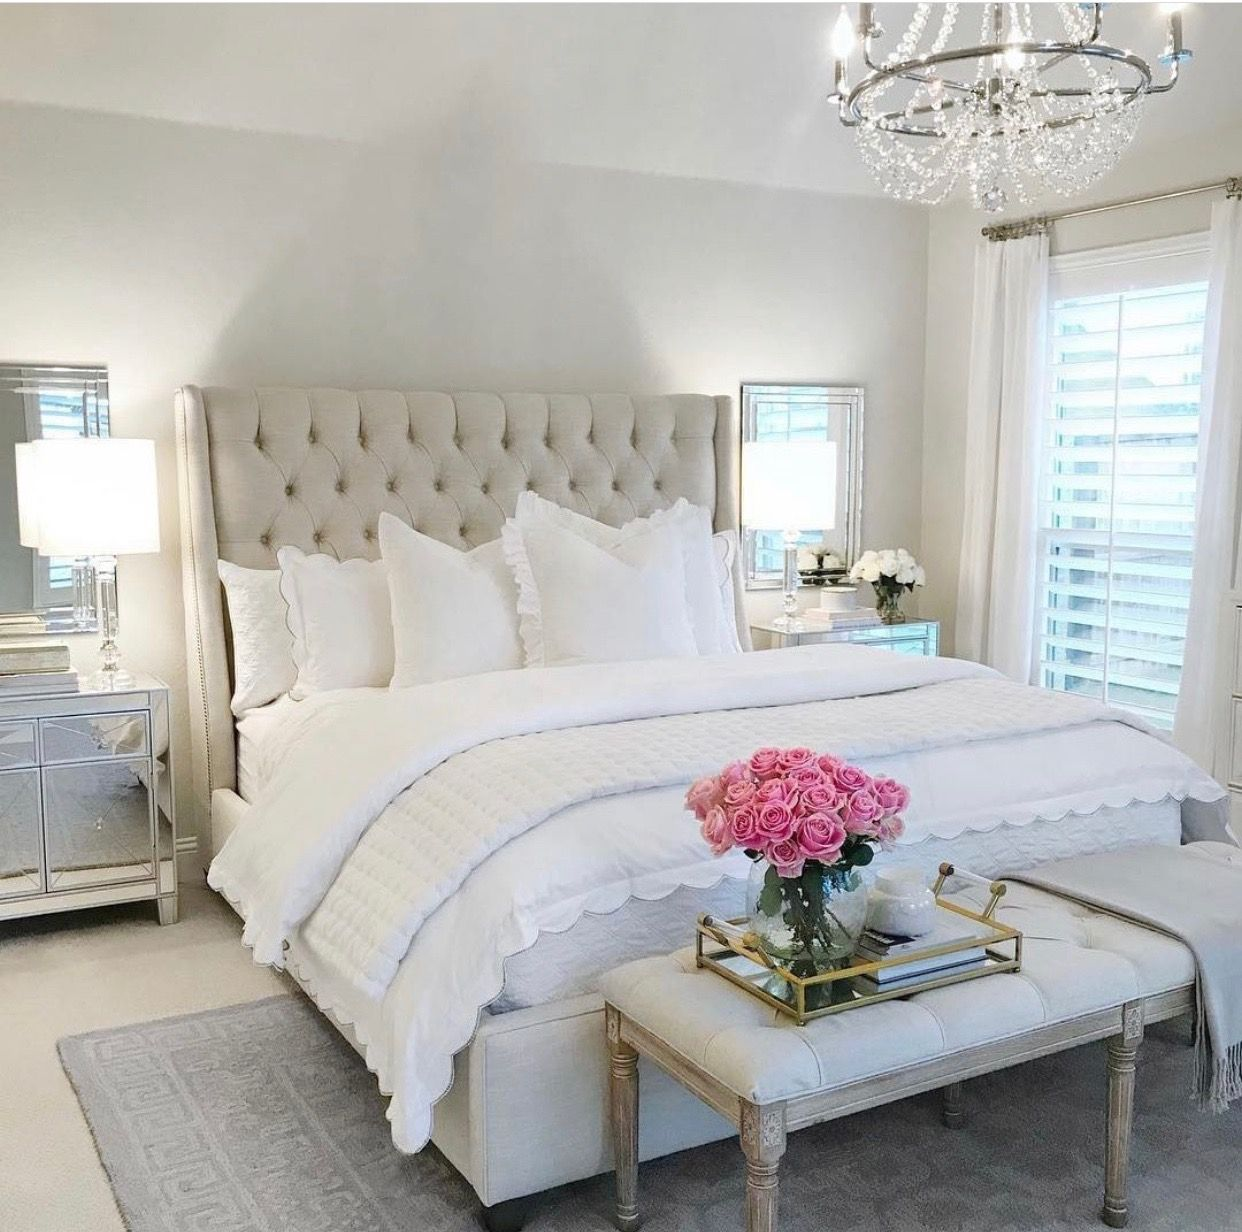 My next bedroom #thedecordiet #romance  Classy bedroom, Small